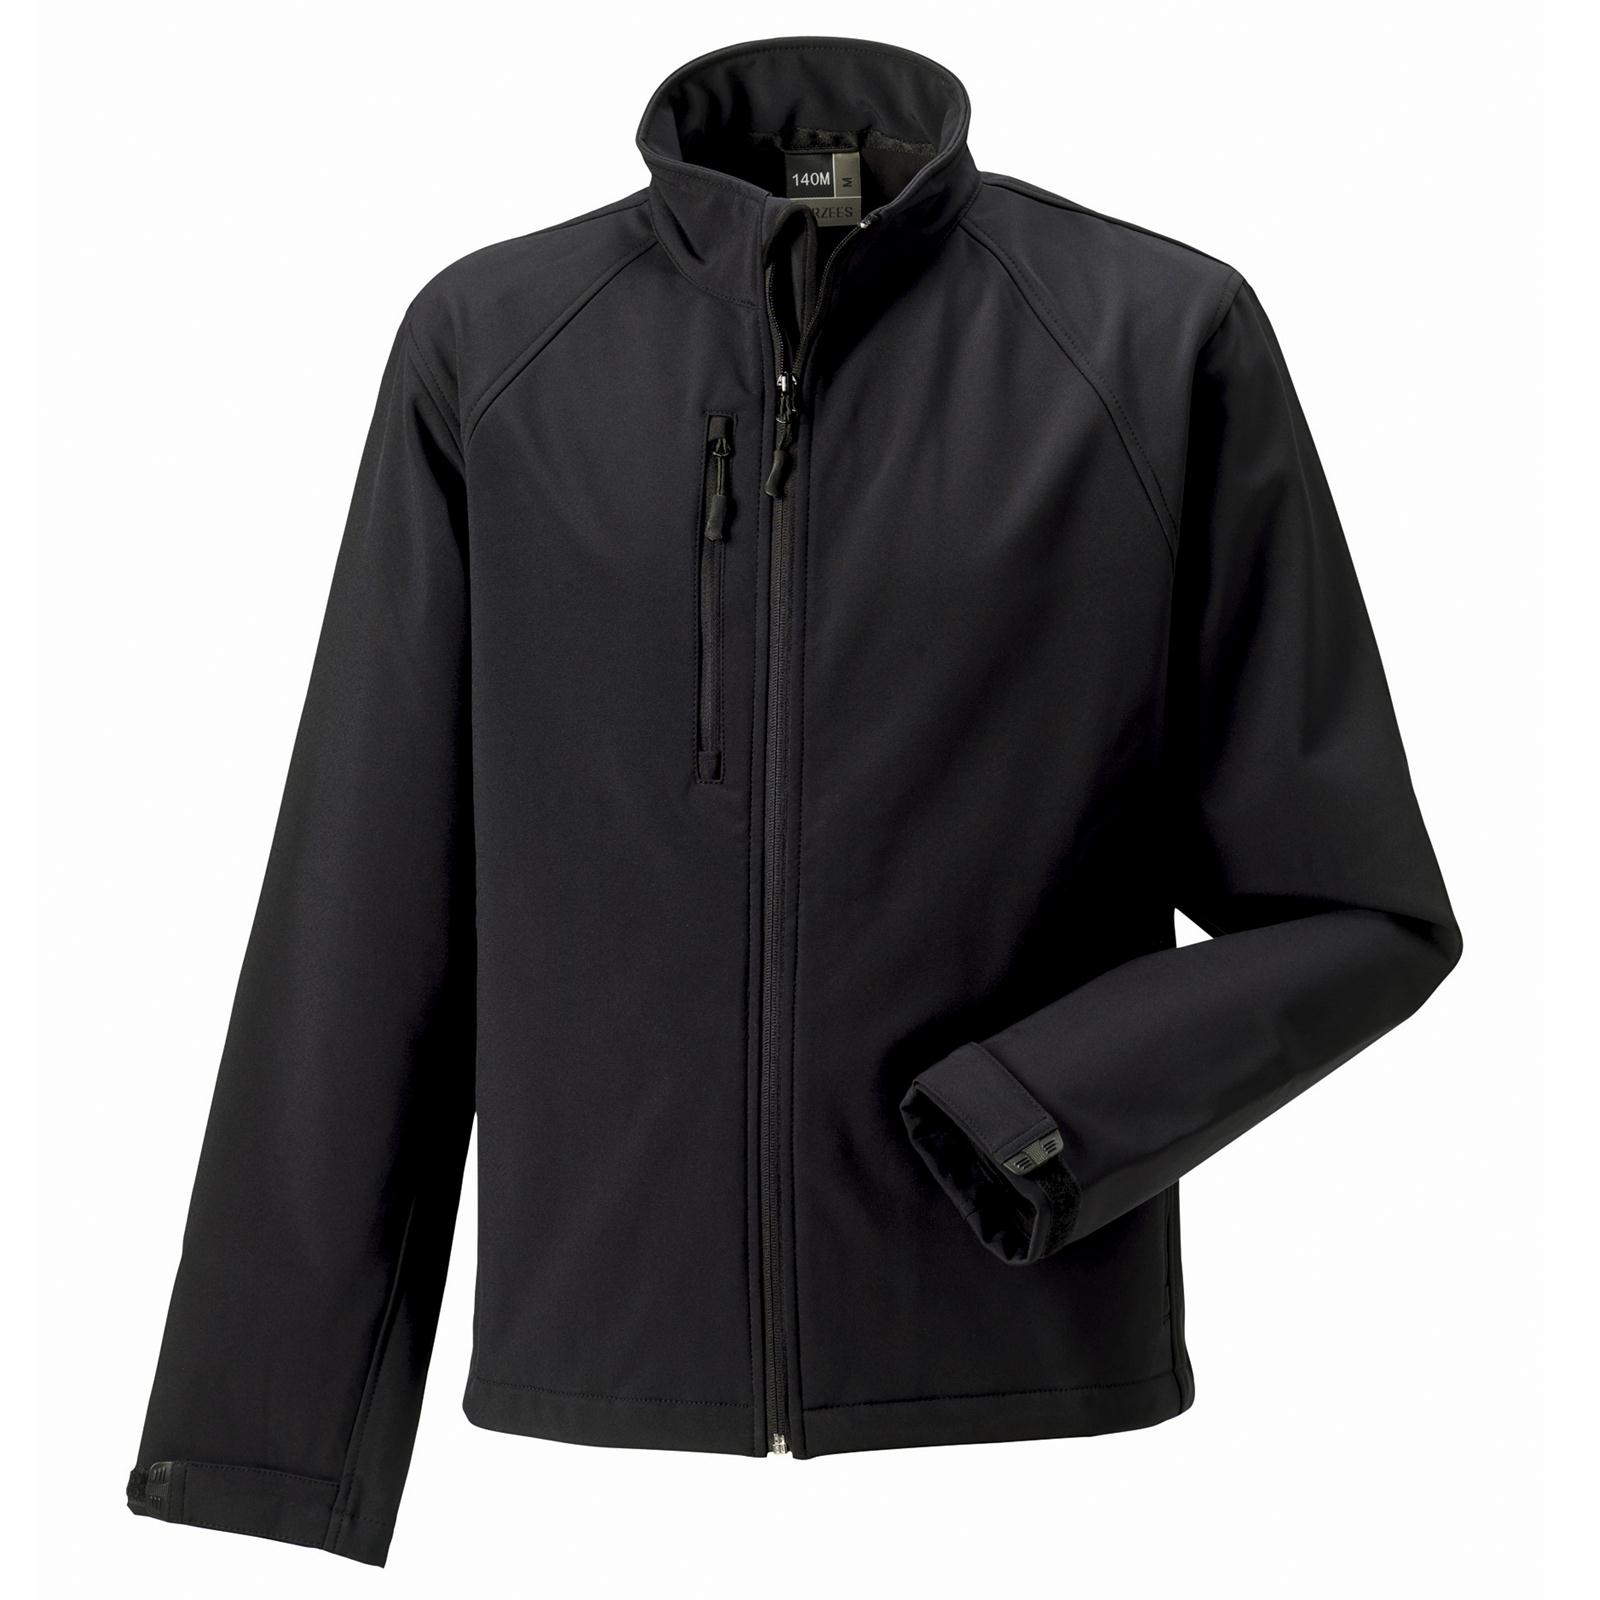 new russell mens casual soft shell jacket in 6 colours xs 4xl ebay. Black Bedroom Furniture Sets. Home Design Ideas